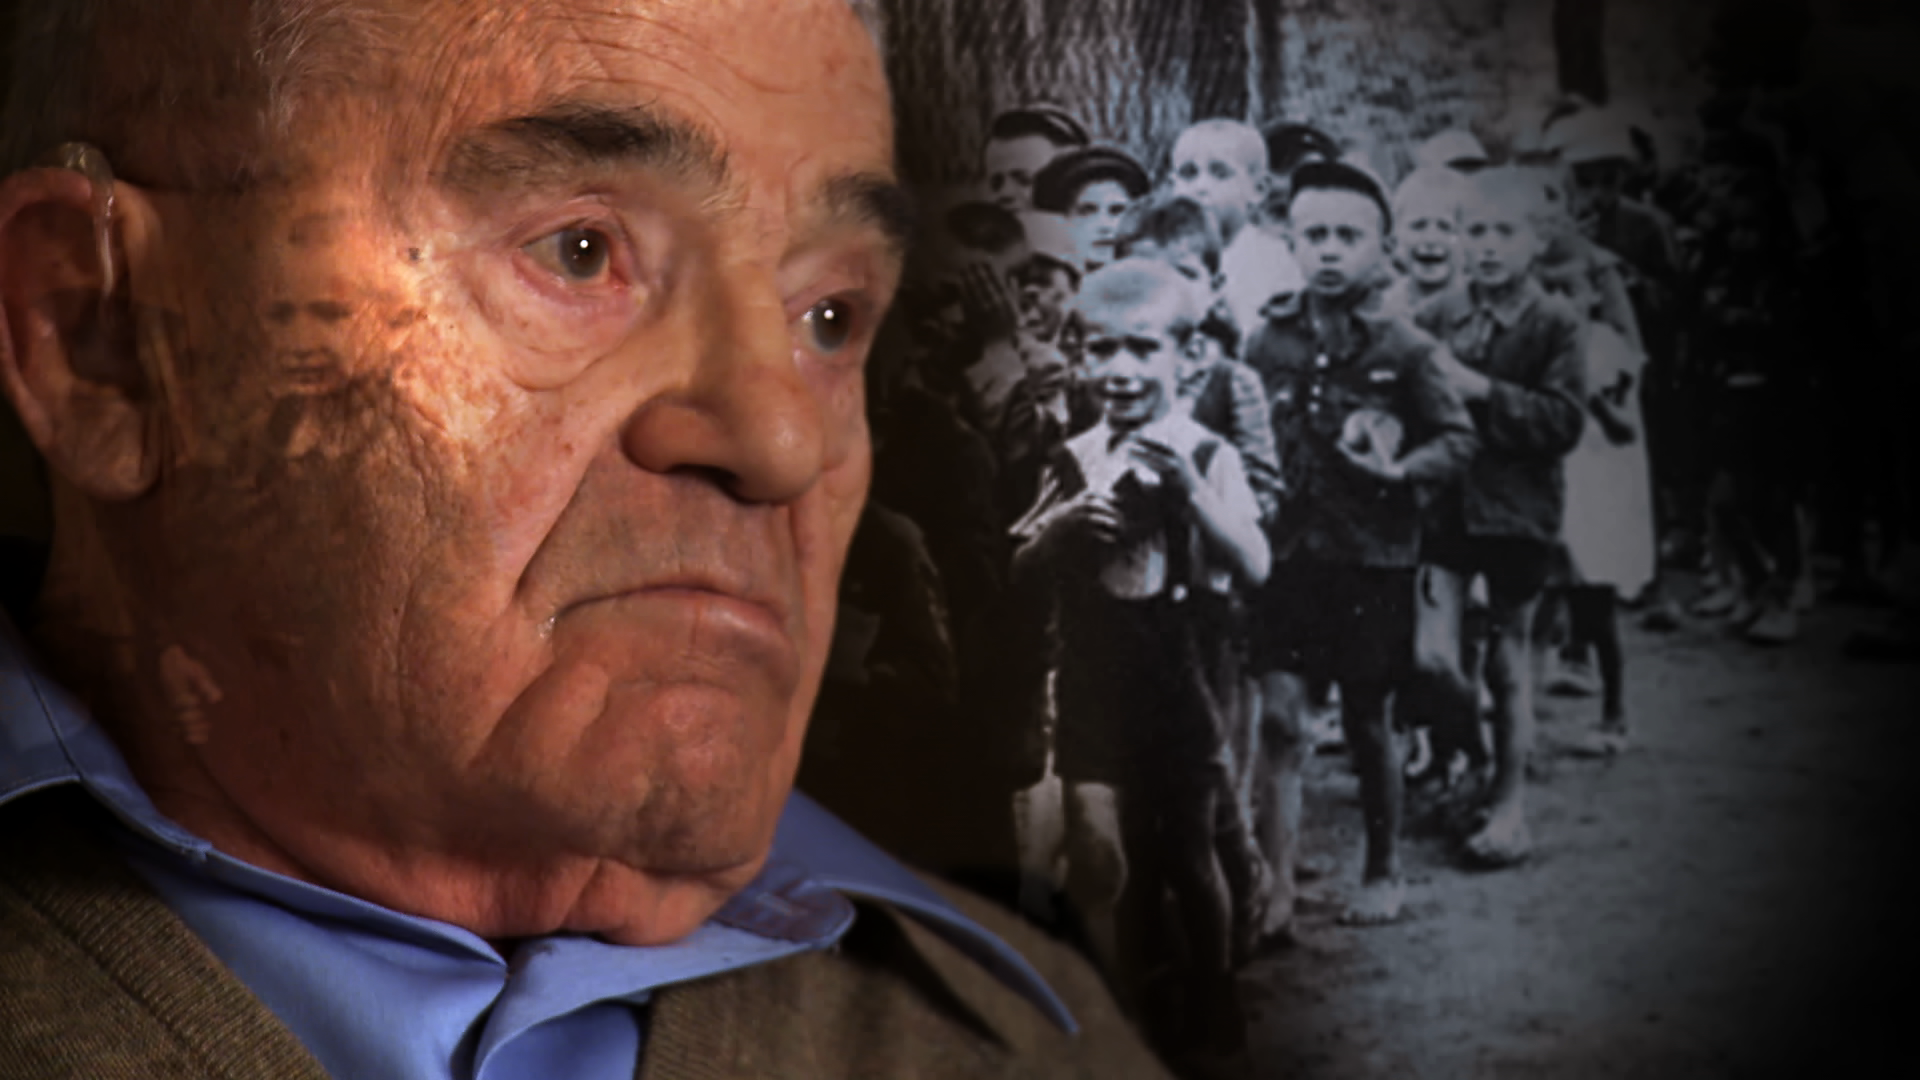 Stern's face in color on a background of a black and white Holocaust photo